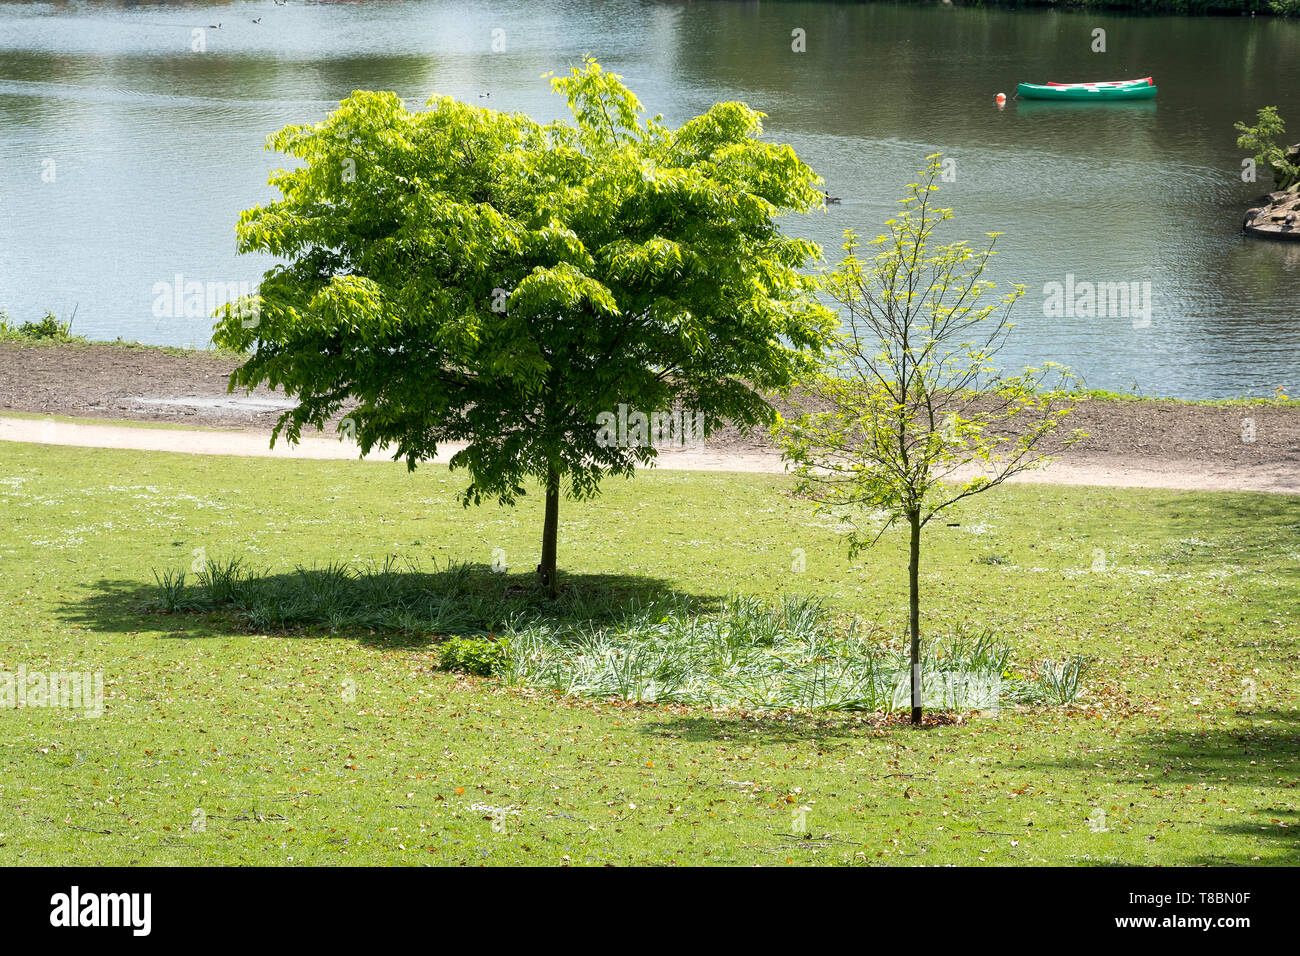 Small park trees summer day Stock Photo